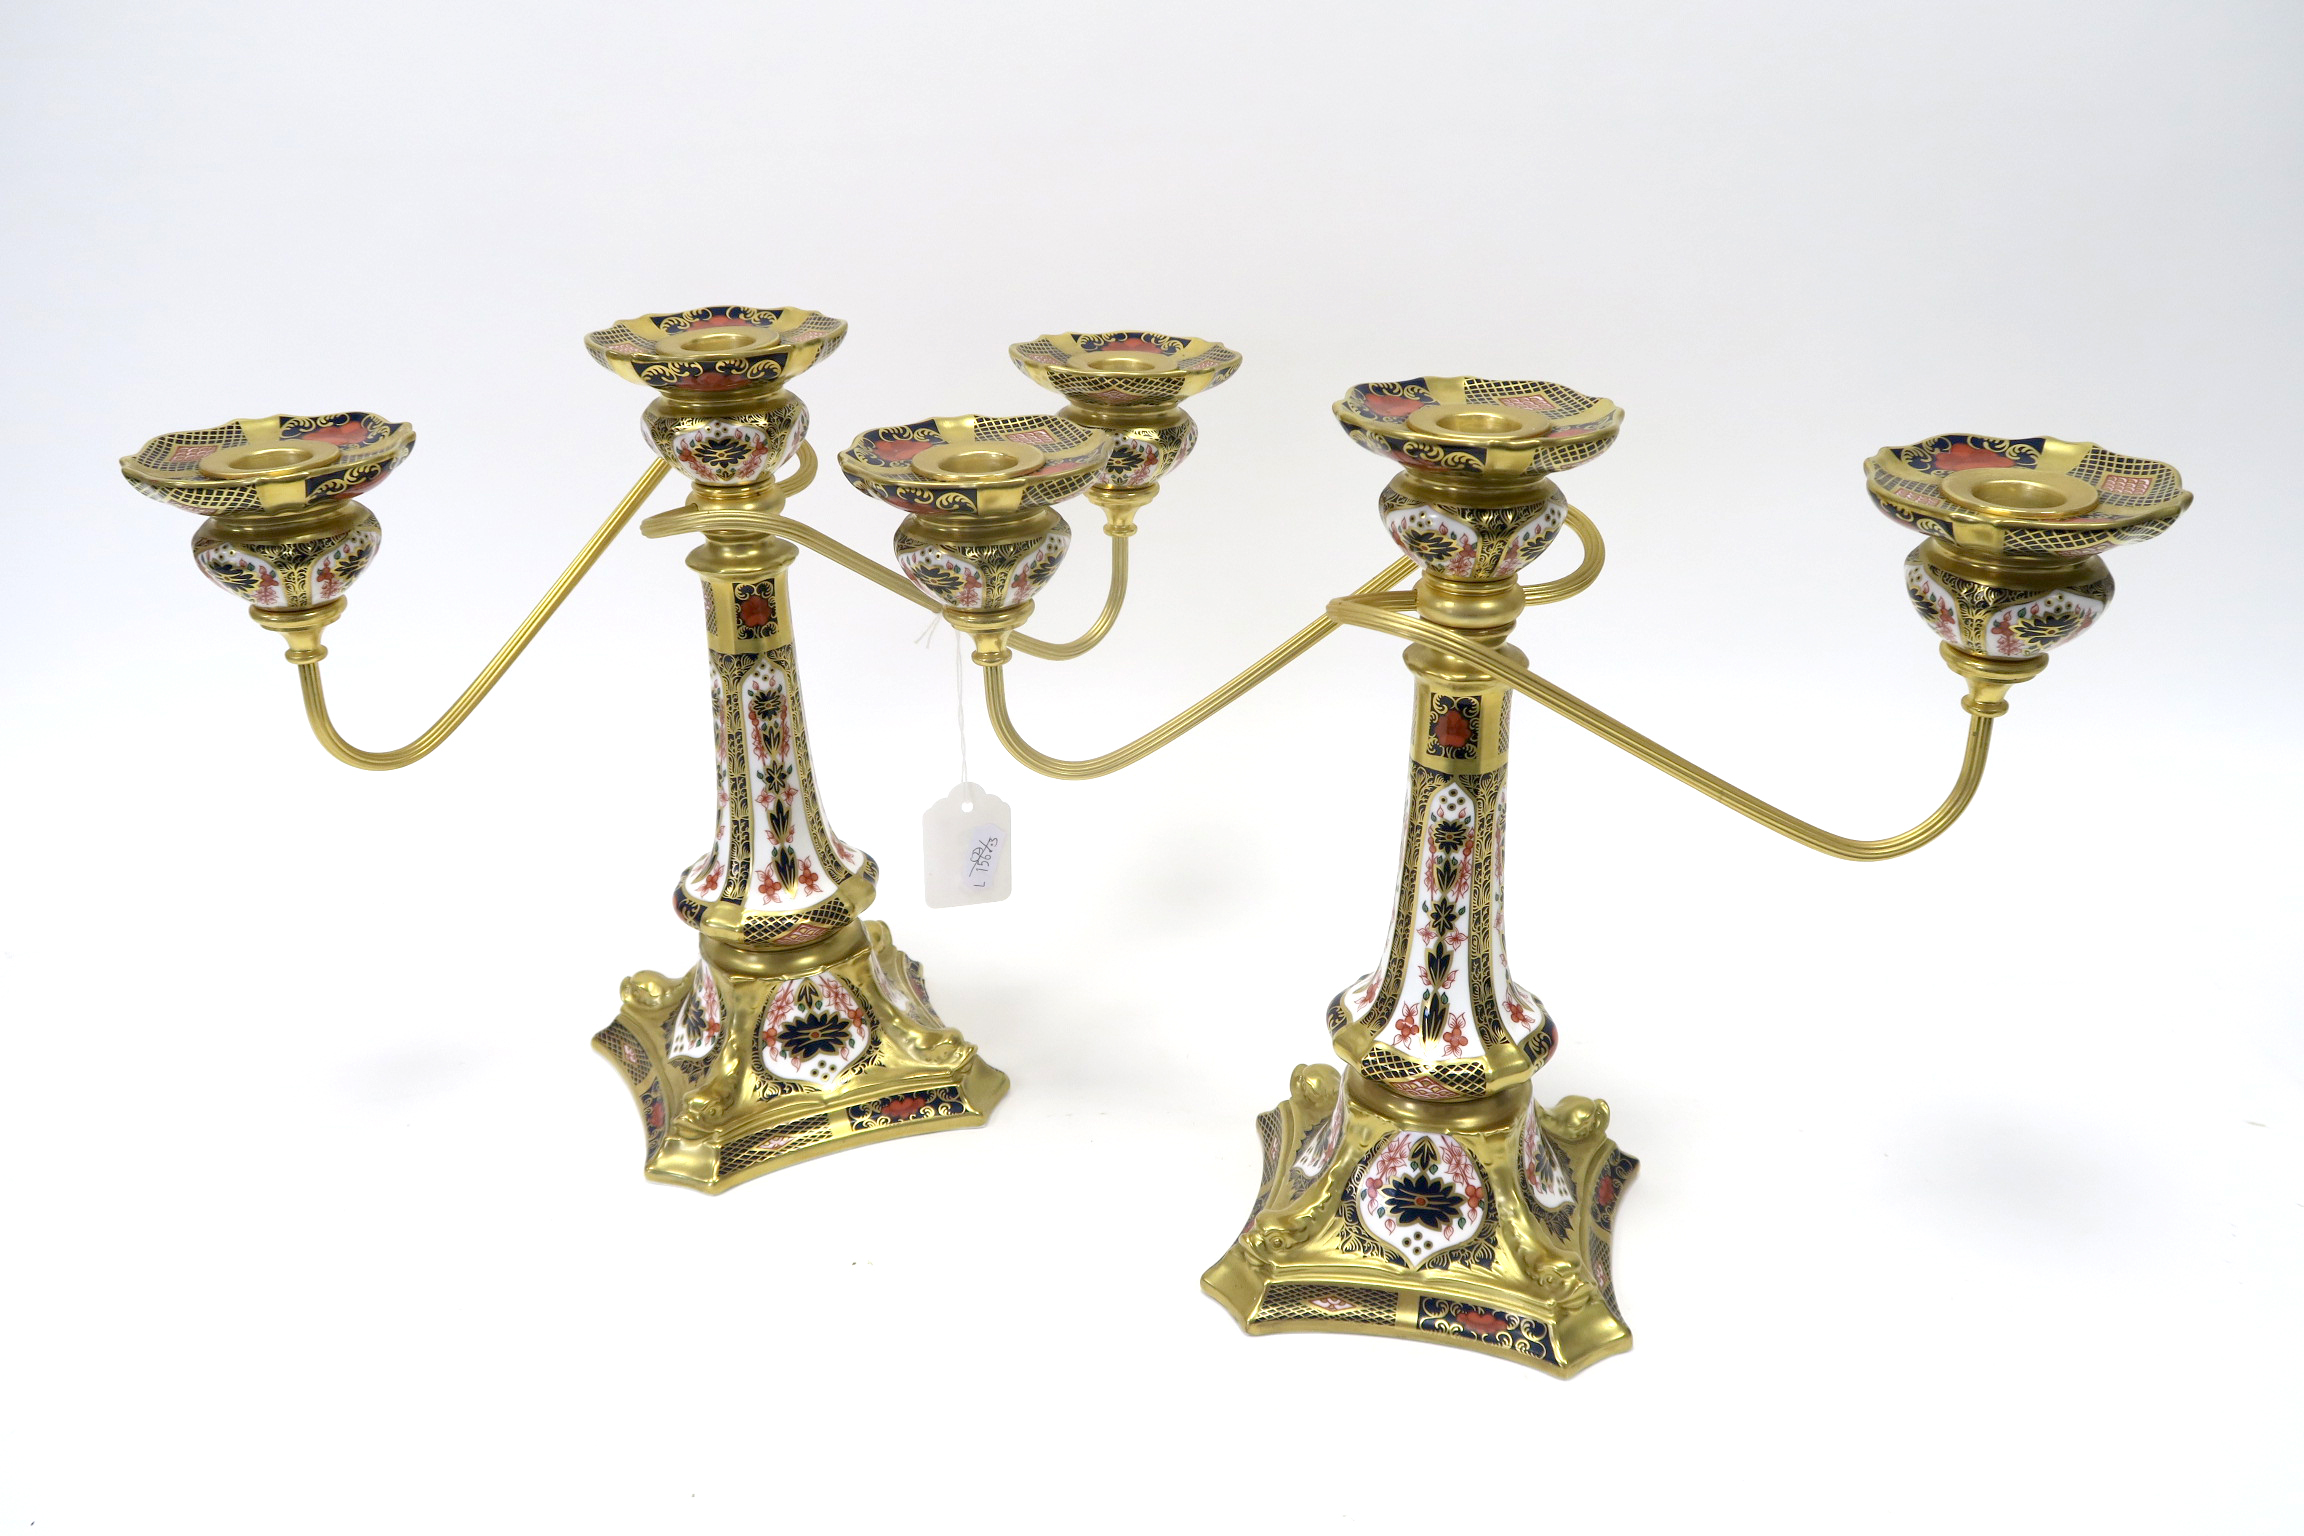 Lot 648 - A Pair of Royal Crown Derby Porcelain Two Branch Candelabra, with gilt metal mounts, the tapered